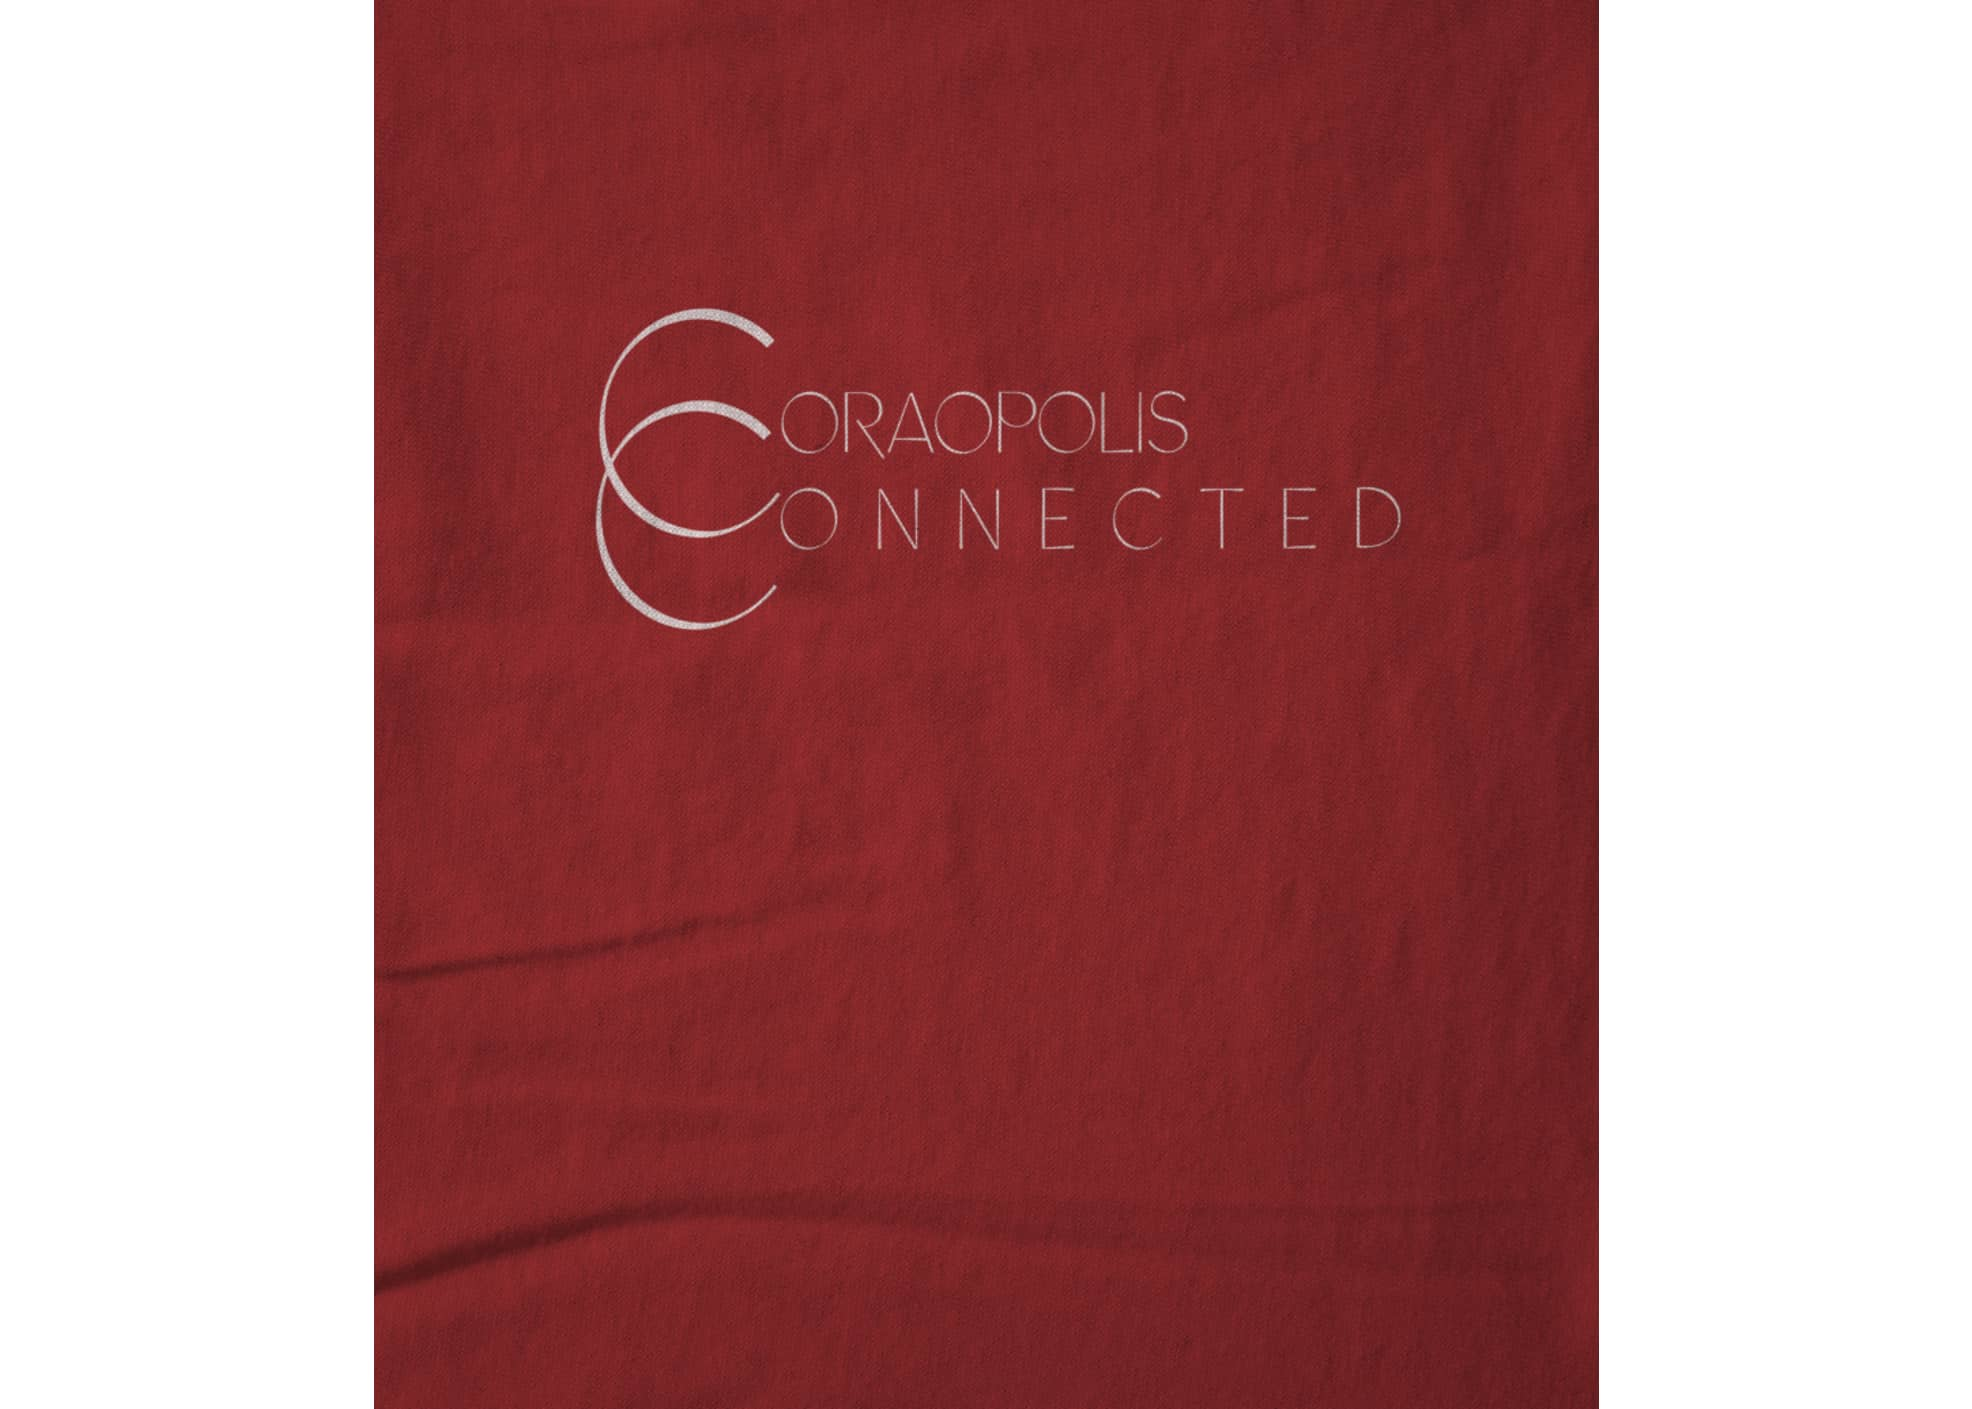 Coraopolis connected red 1627485318